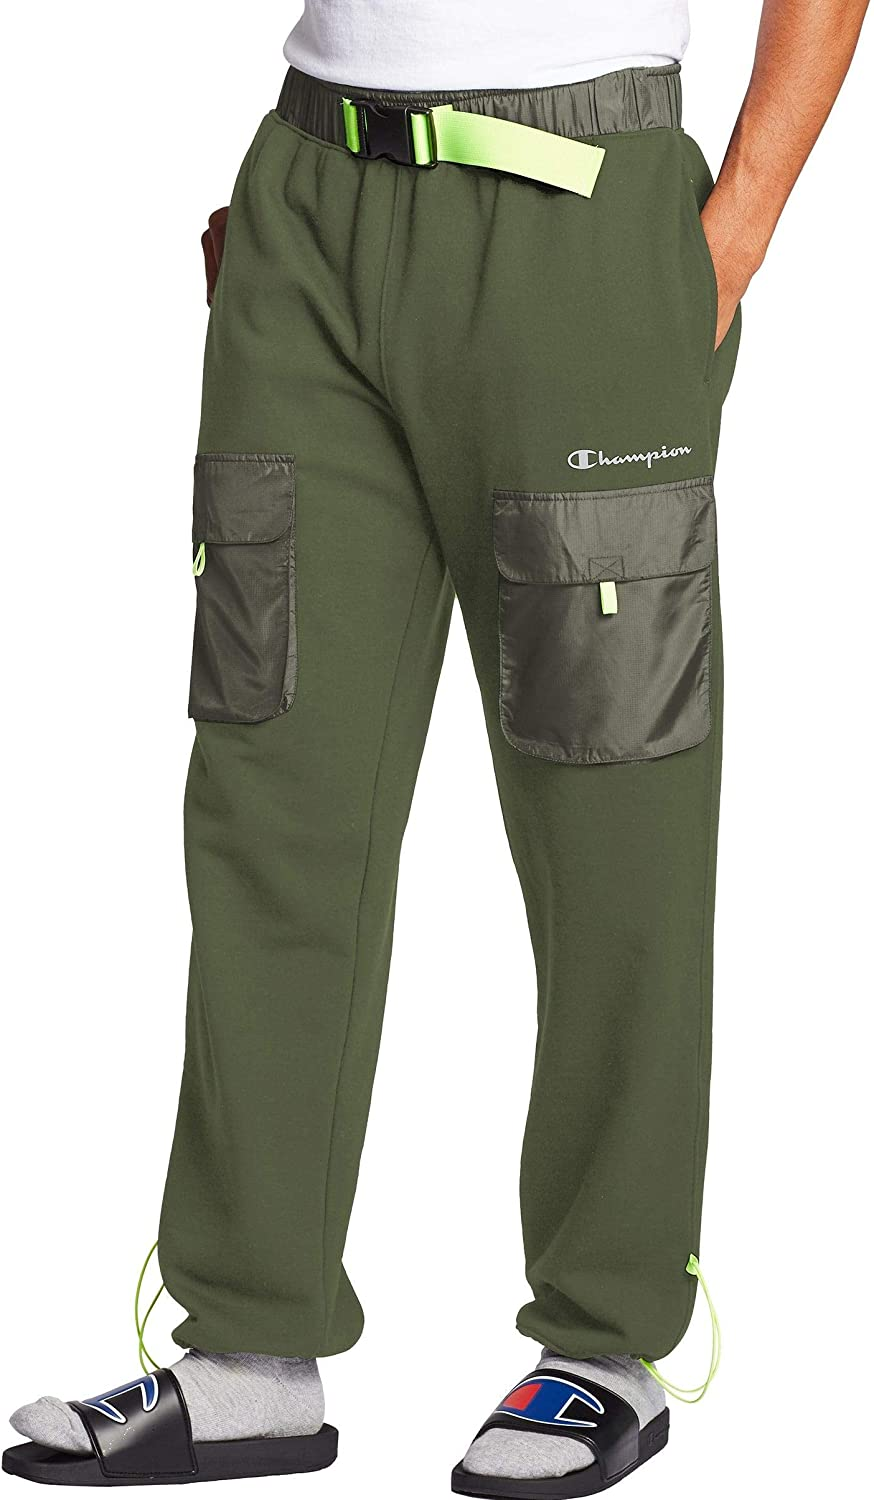 Champion Men's Sideline Jogger Las Vegas Mall Sales with Woven Piecing